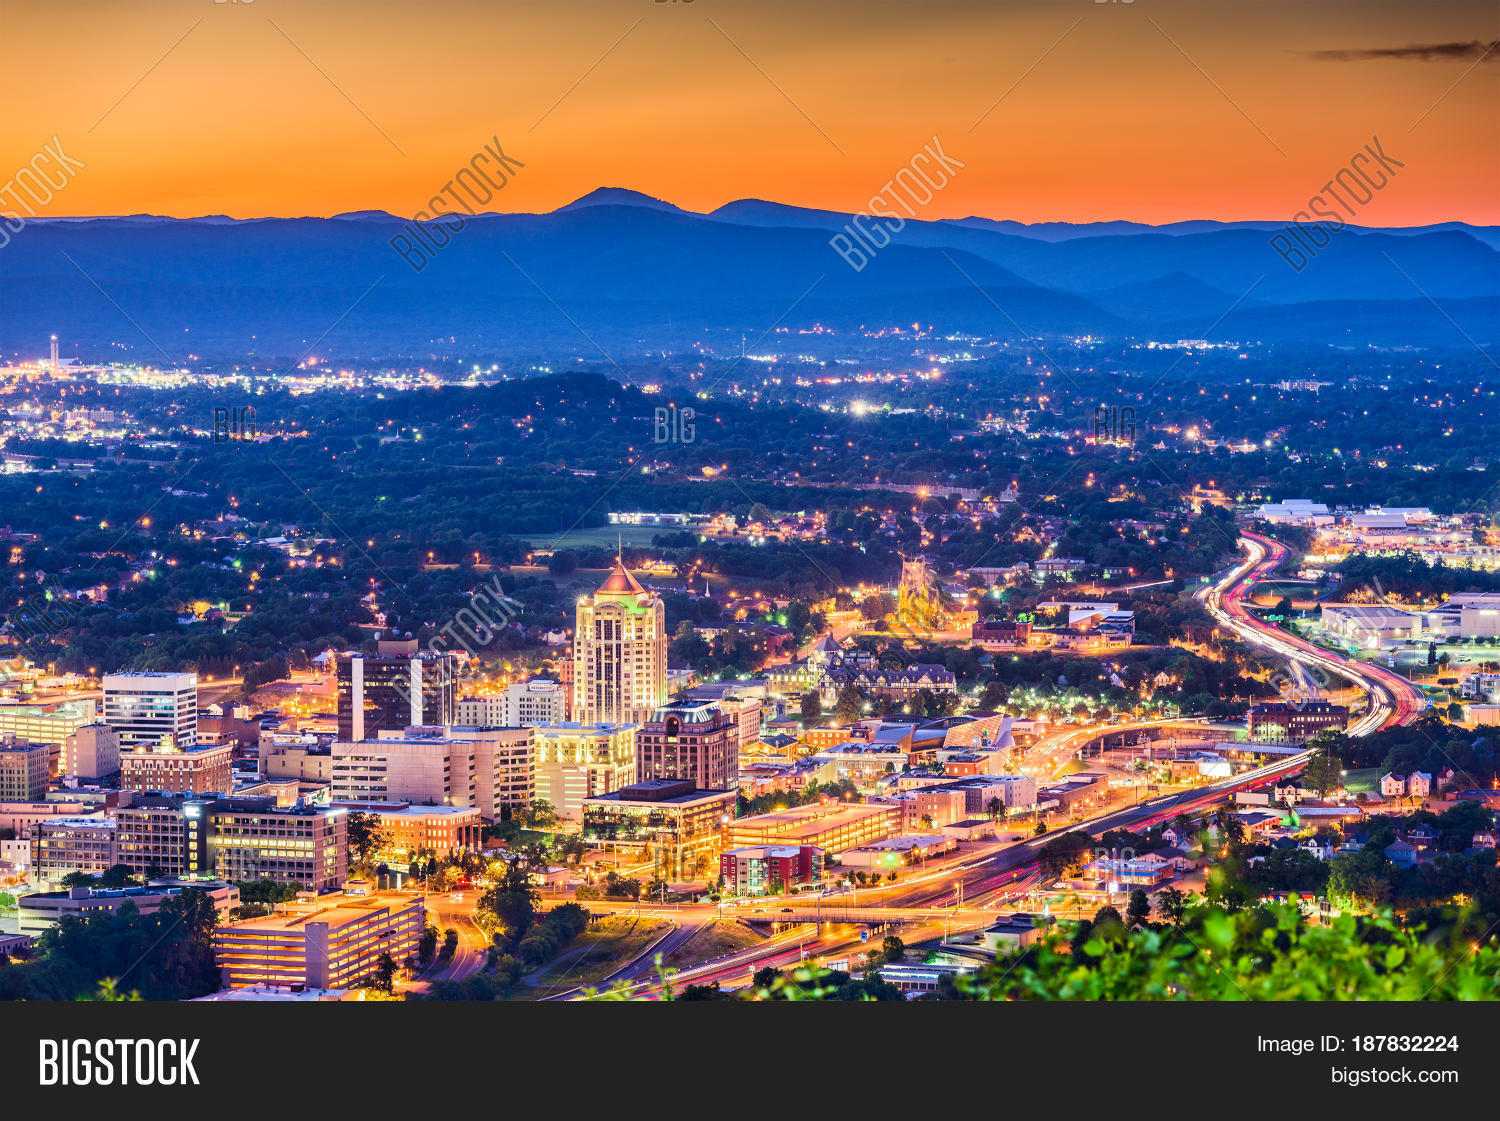 aerial view,america,american,appalachia,appalachians,architecture,blue ridge mountains,buildings,business district,city,cityscape,dawn,district,downtown,dusk,evening,financial district,hills,historic,historical,landmark,lights,mill mountain,morning,mountains,night,observation deck,office buildings,roanoke,scene,sightseeing,skyline,south,southern,sunrise,sunset,tourism,town,townscape,travel,twilight,united states,uptown,usa,va,valley,view,virginia,virginian